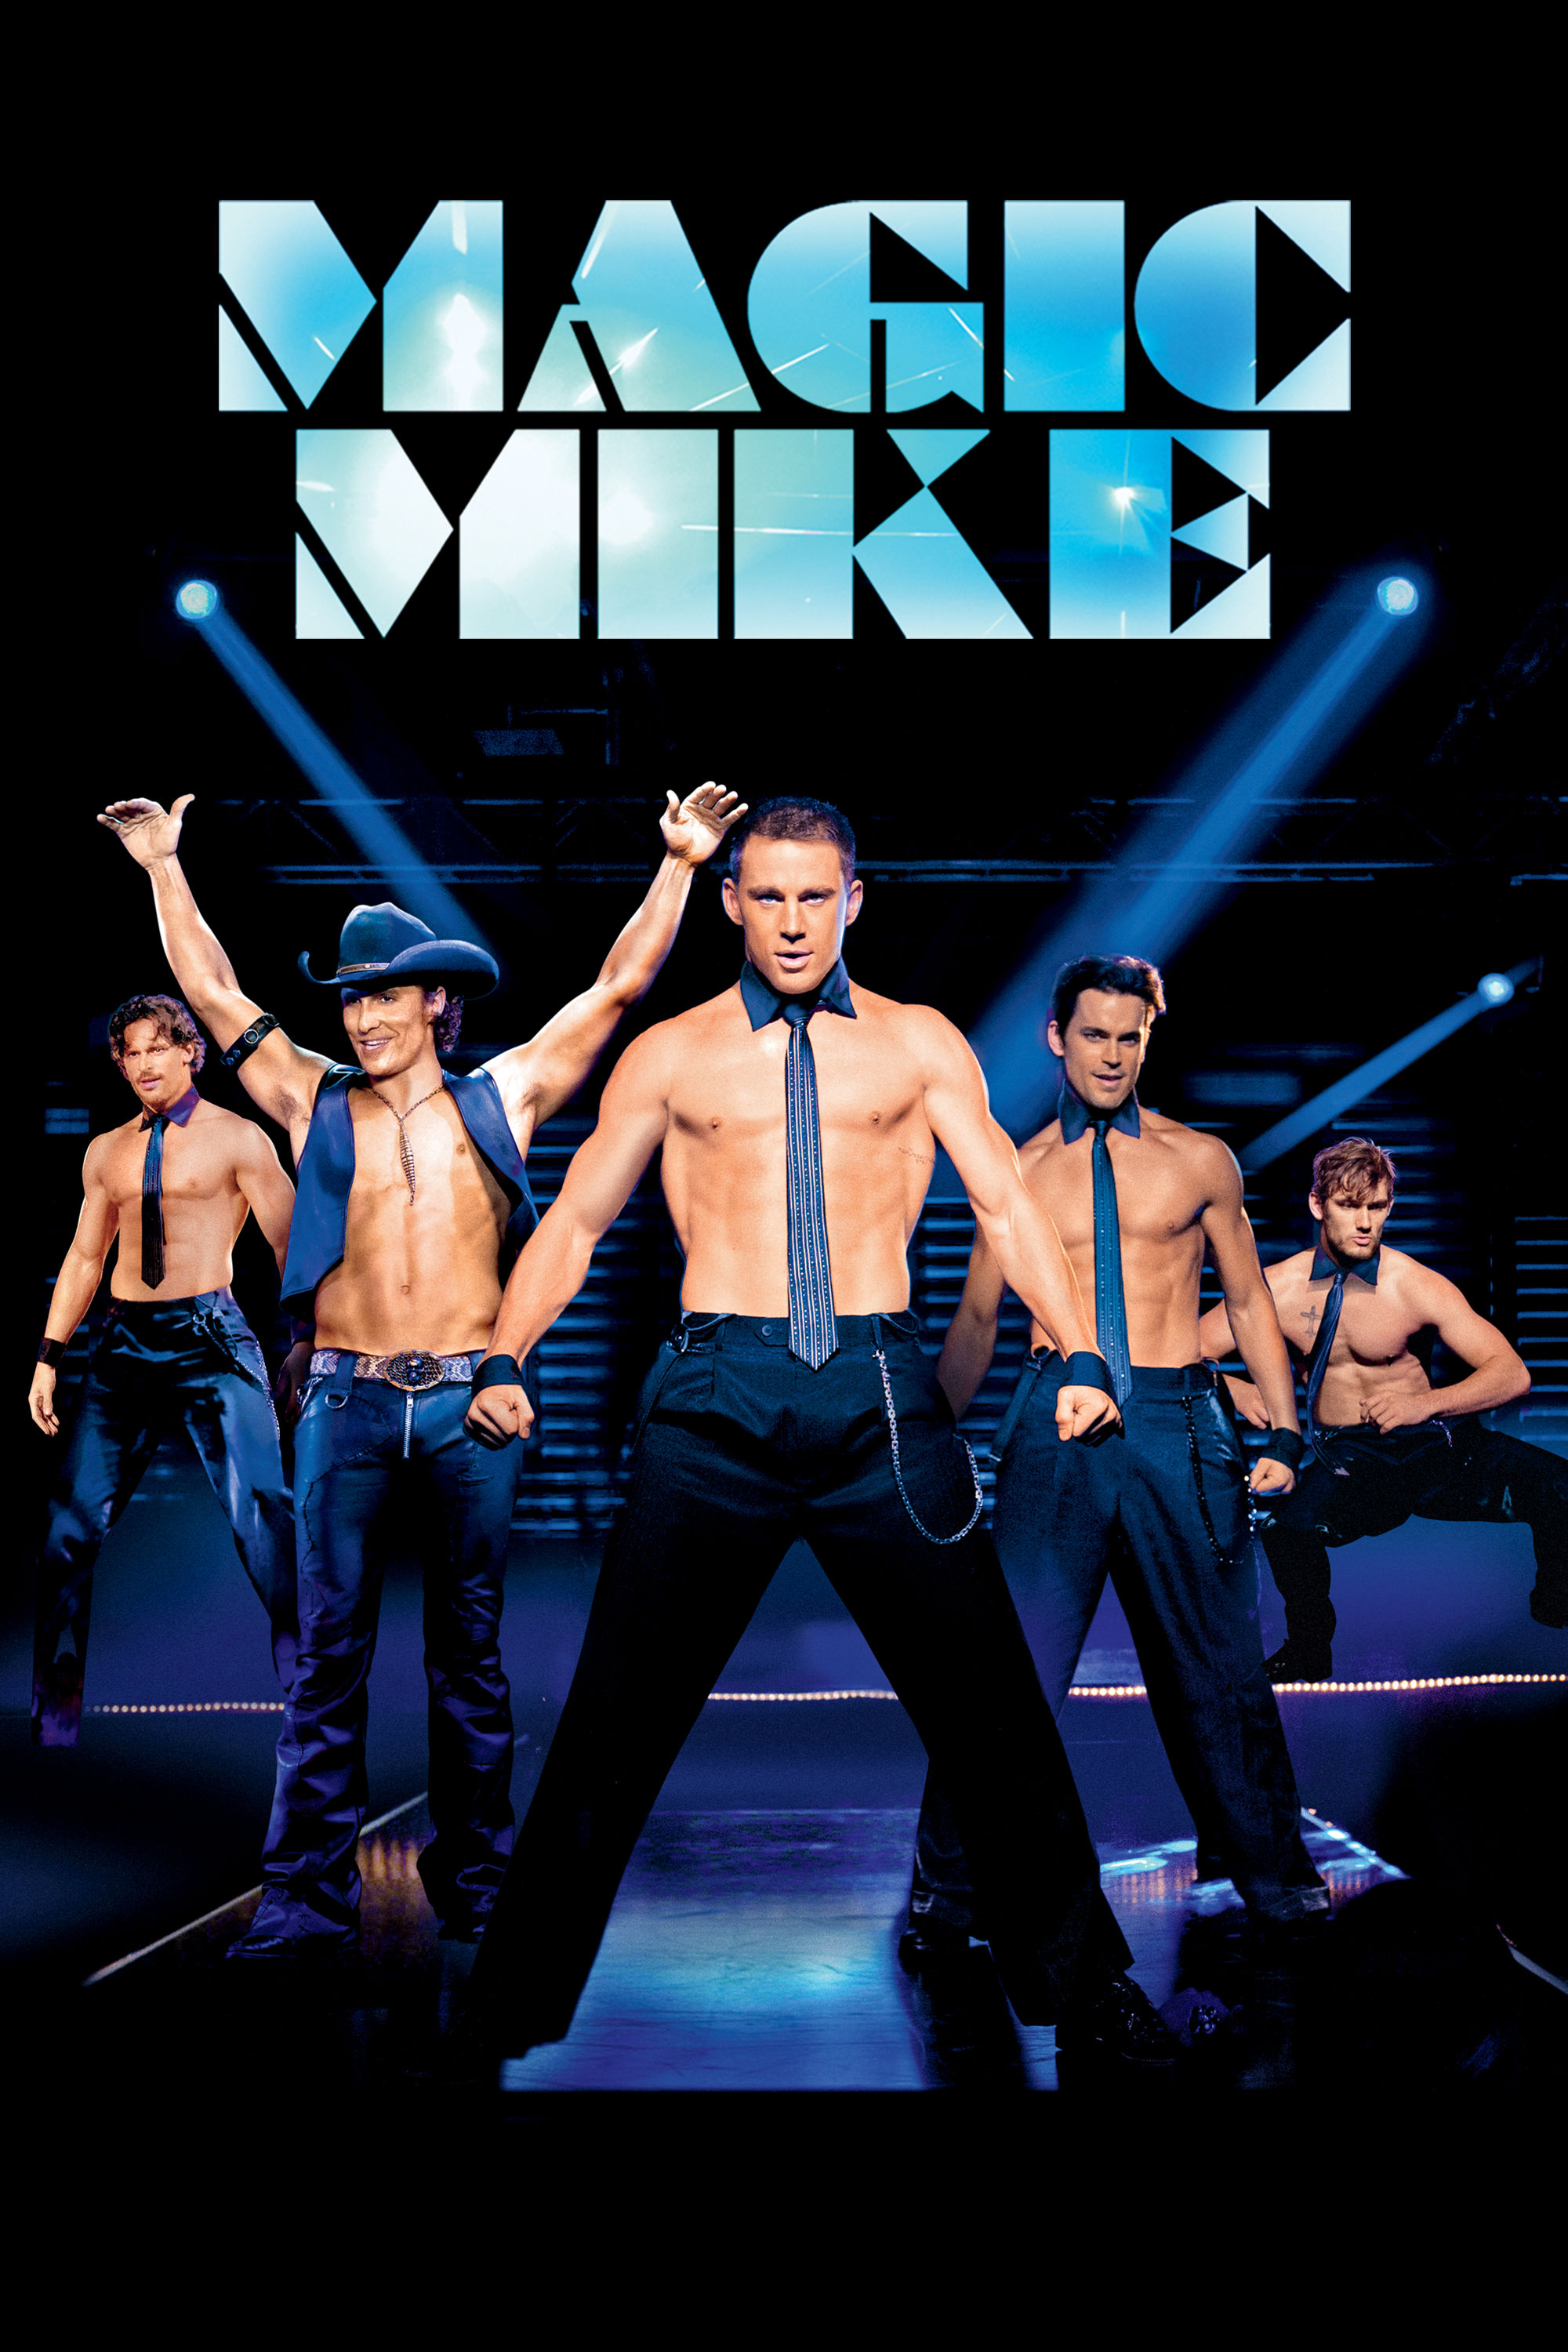 magic mike filming locations poster